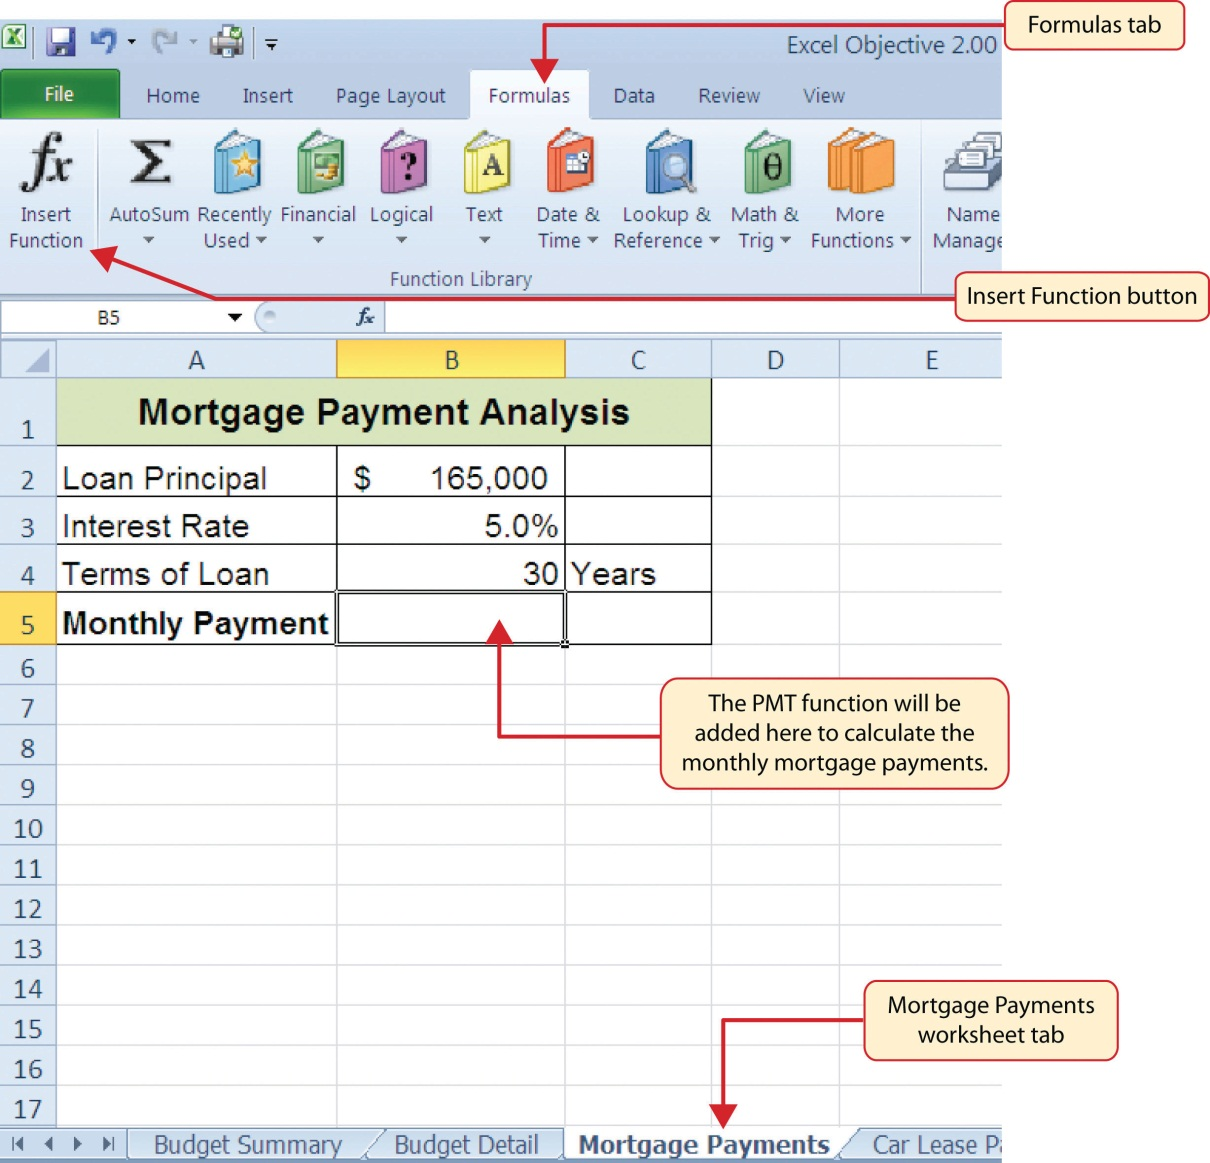 Worksheet To Calculate Deductible Mortgage Interest